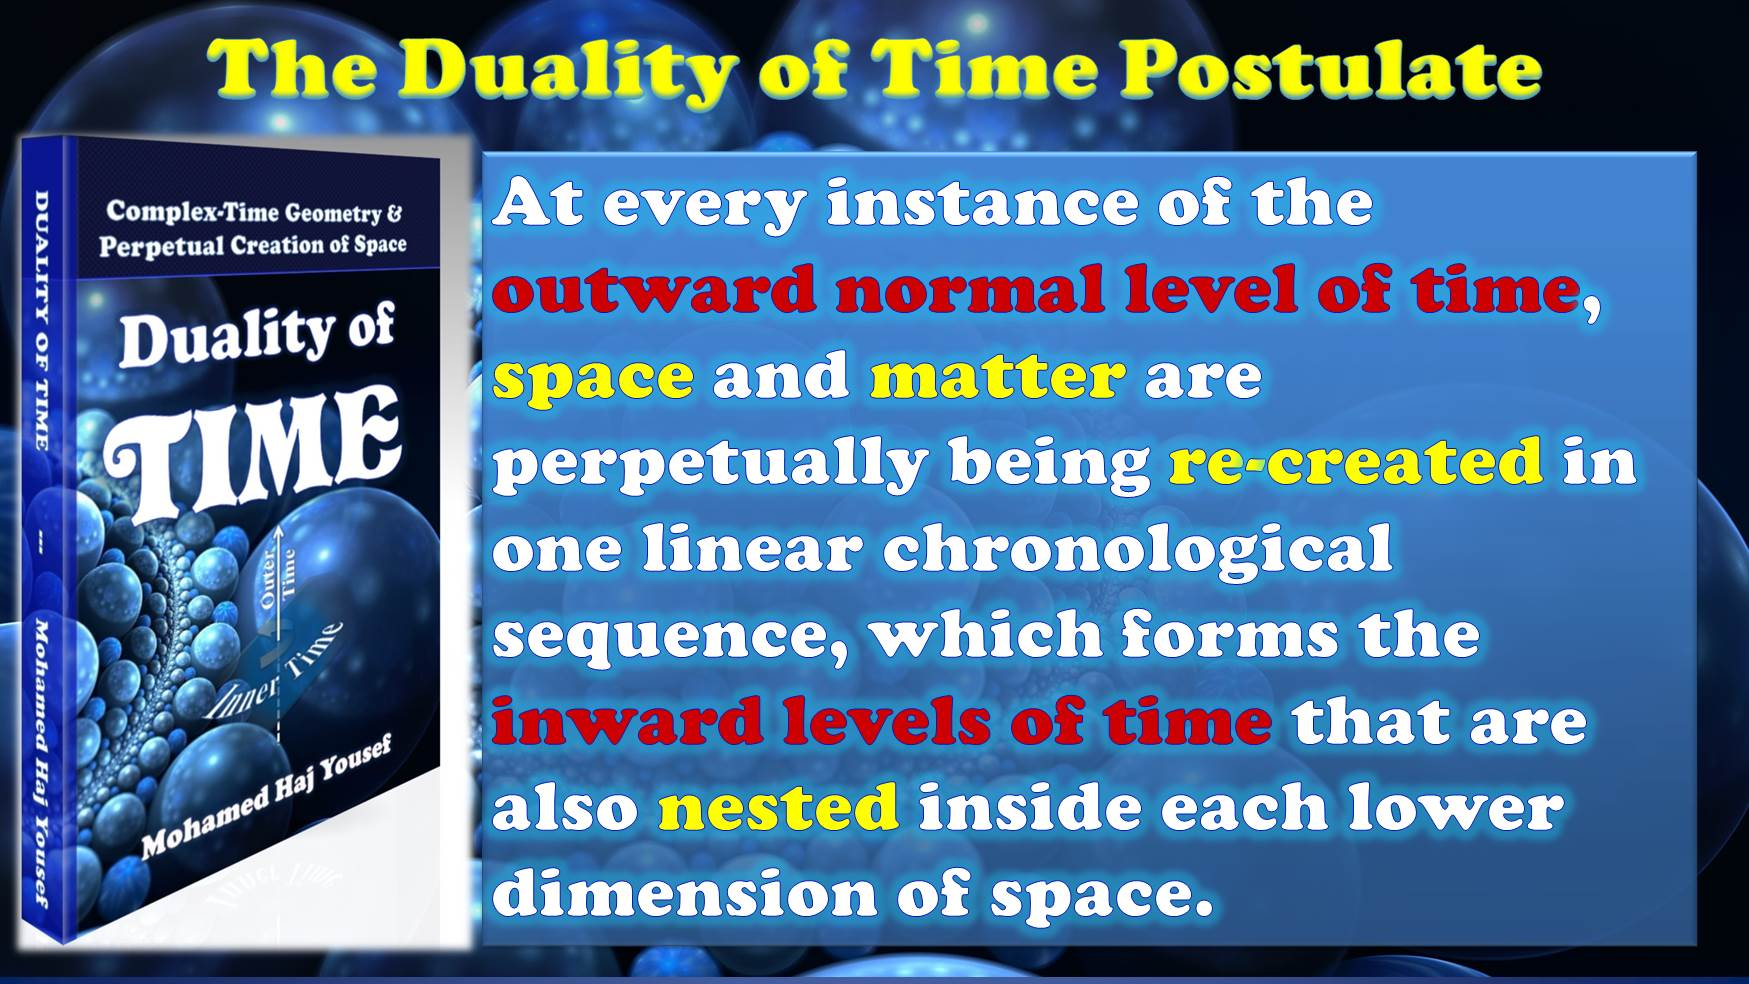 Duality of Time Postulate